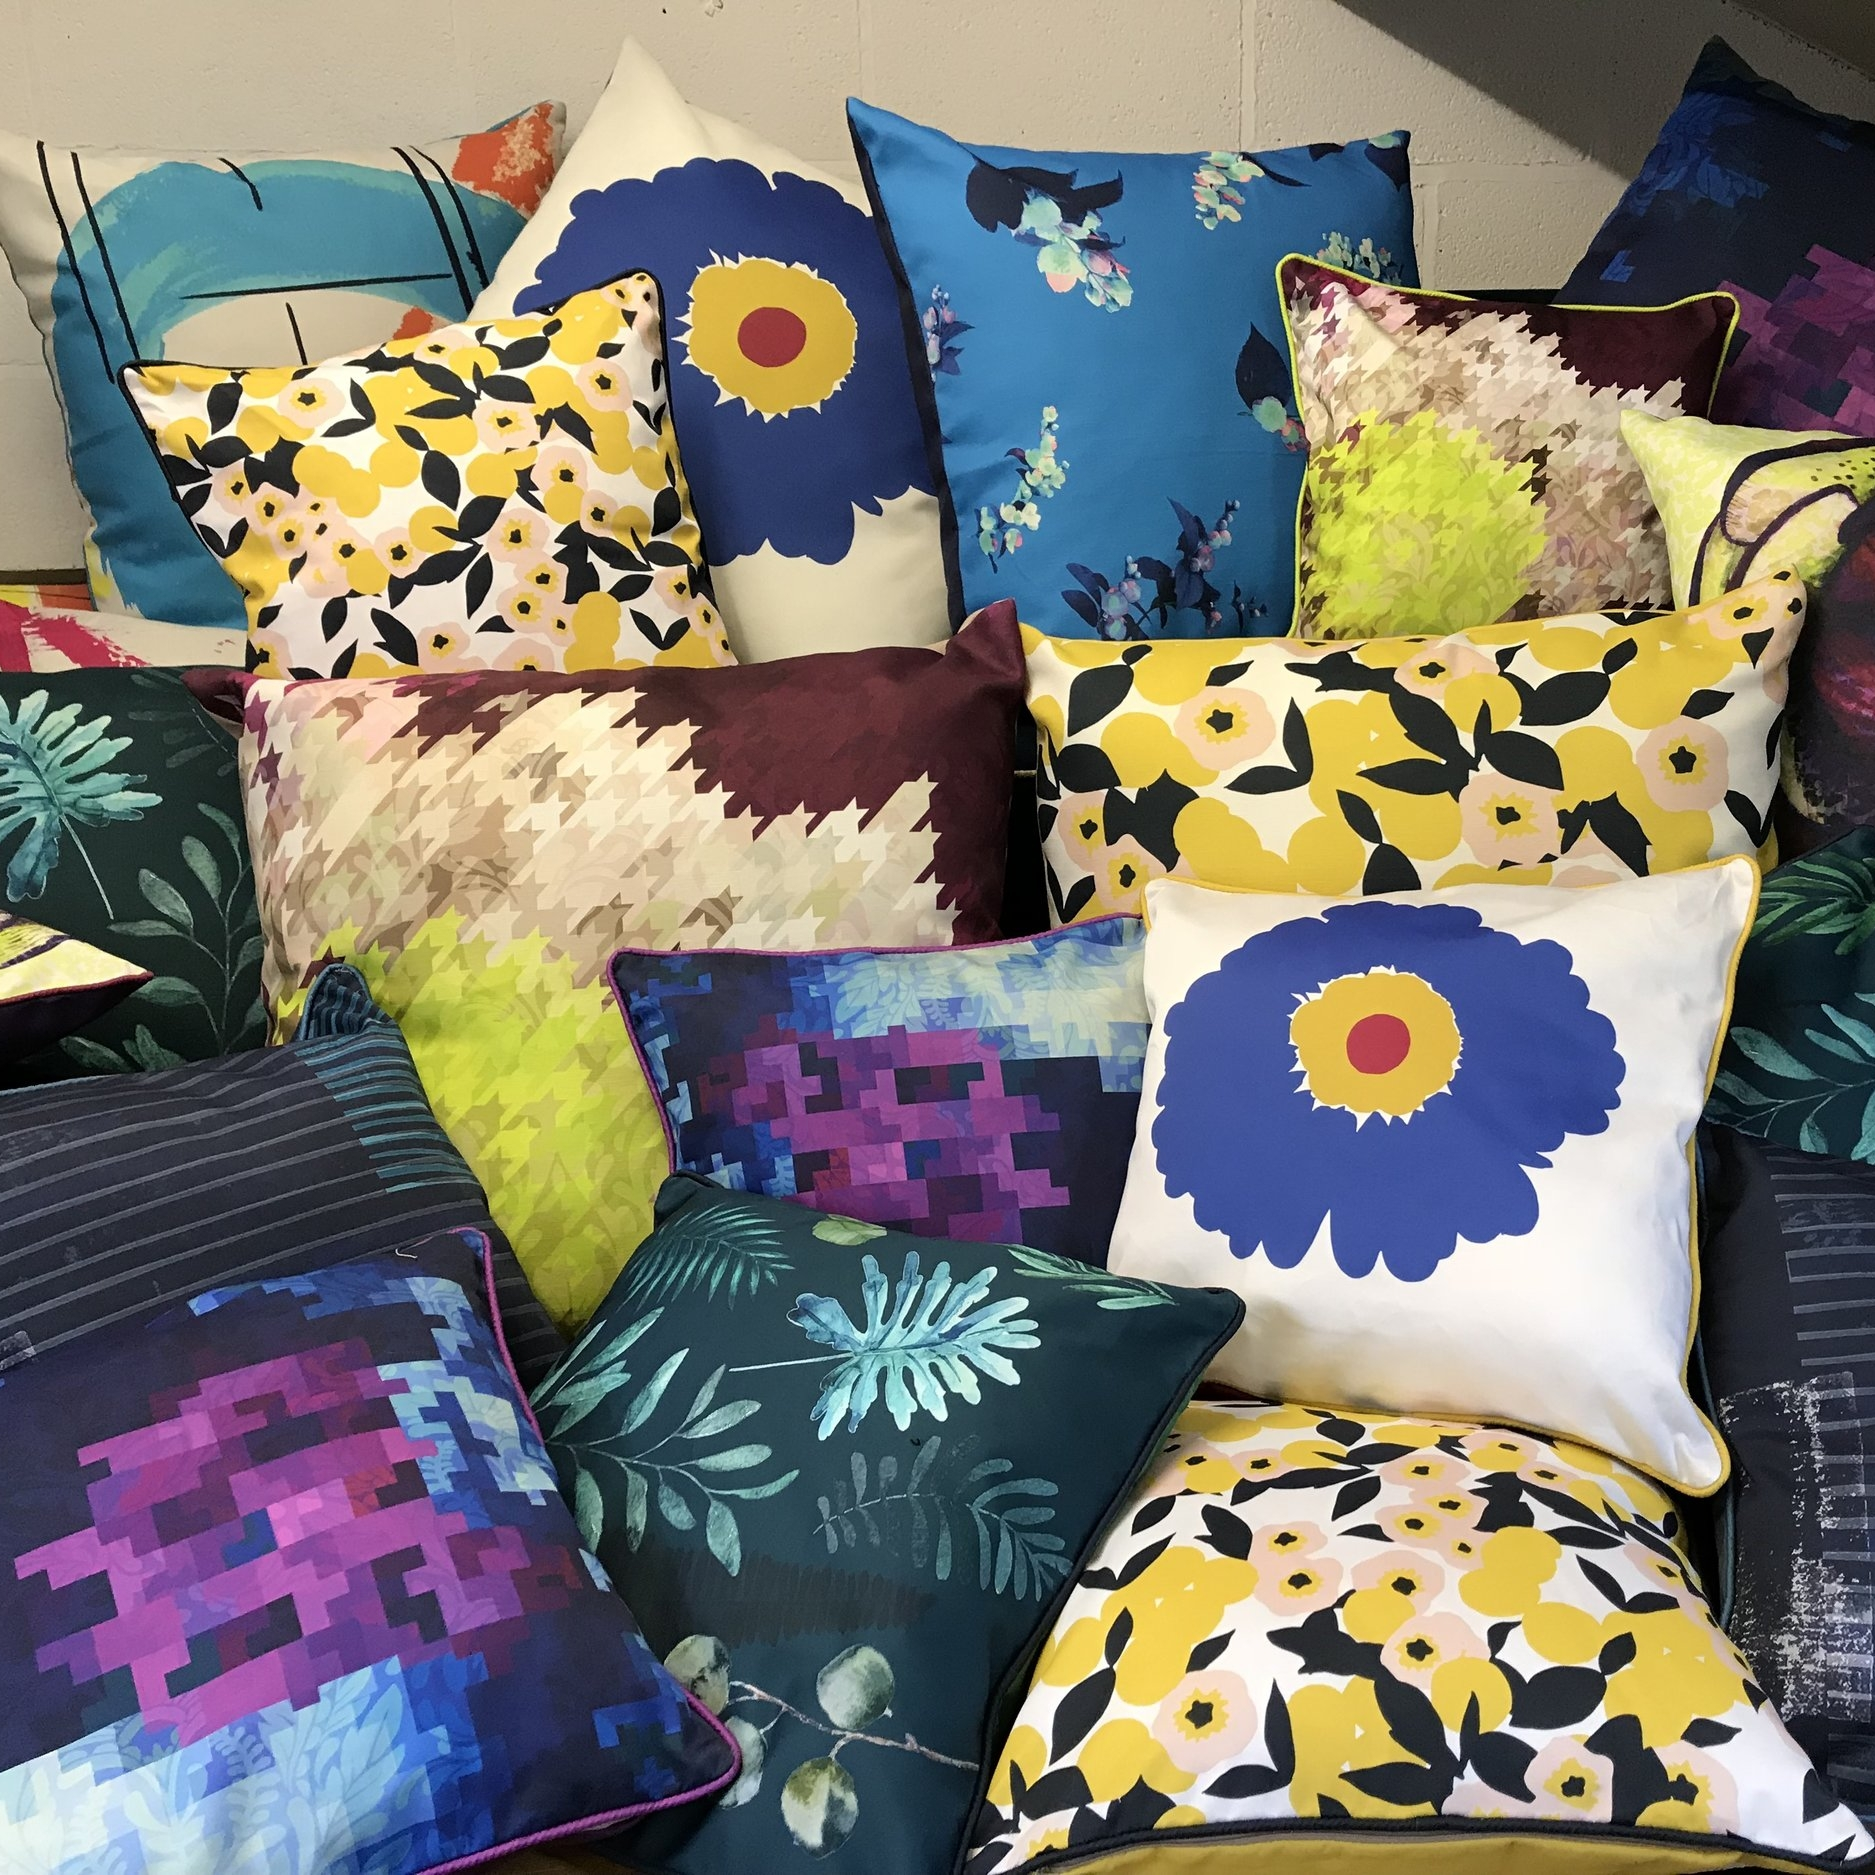 Digitally Printed Cushions - Want your own design printing as a cushion?  Ask us for details